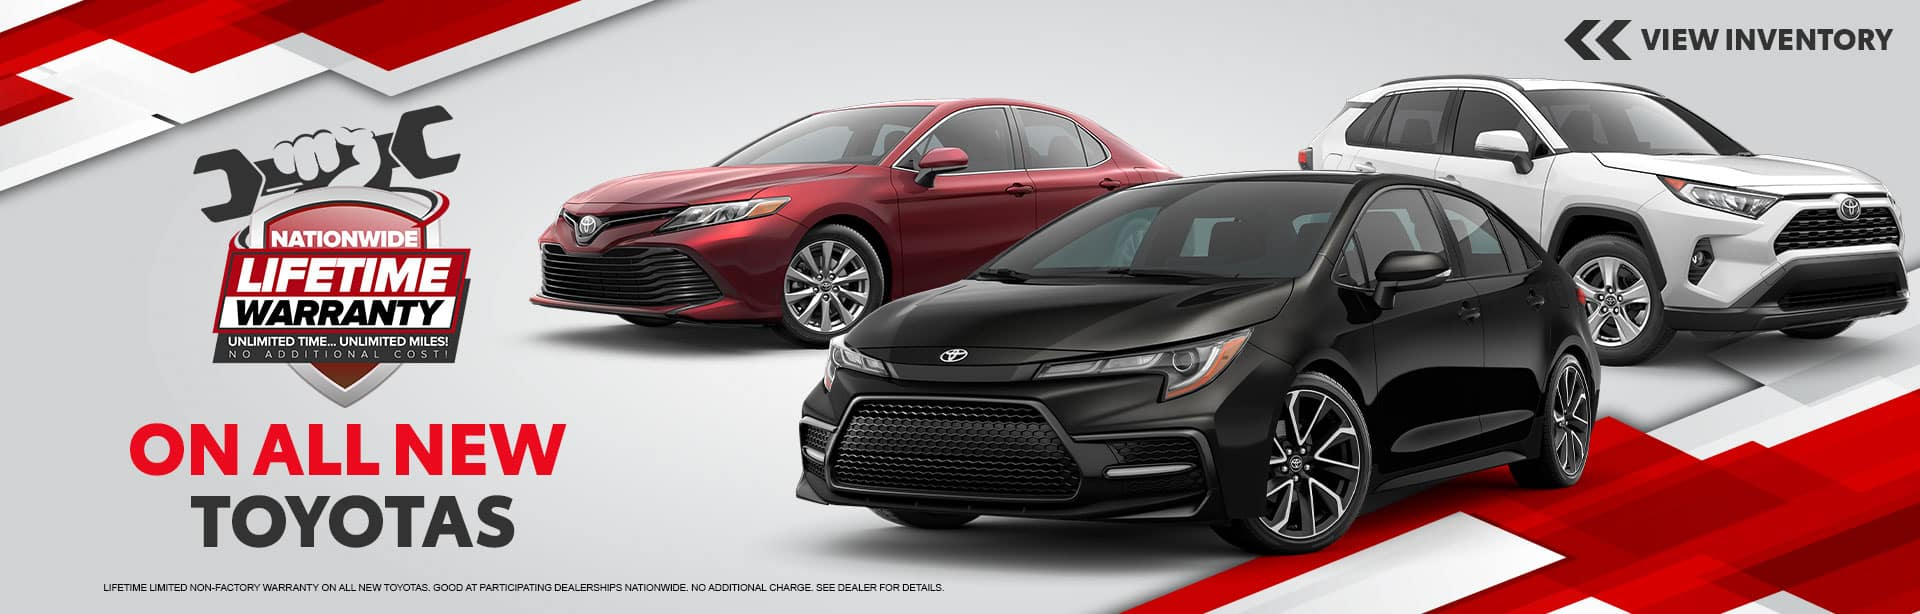 Lifetime Warranty on All new Toyotas at Bev Smith Toyota!